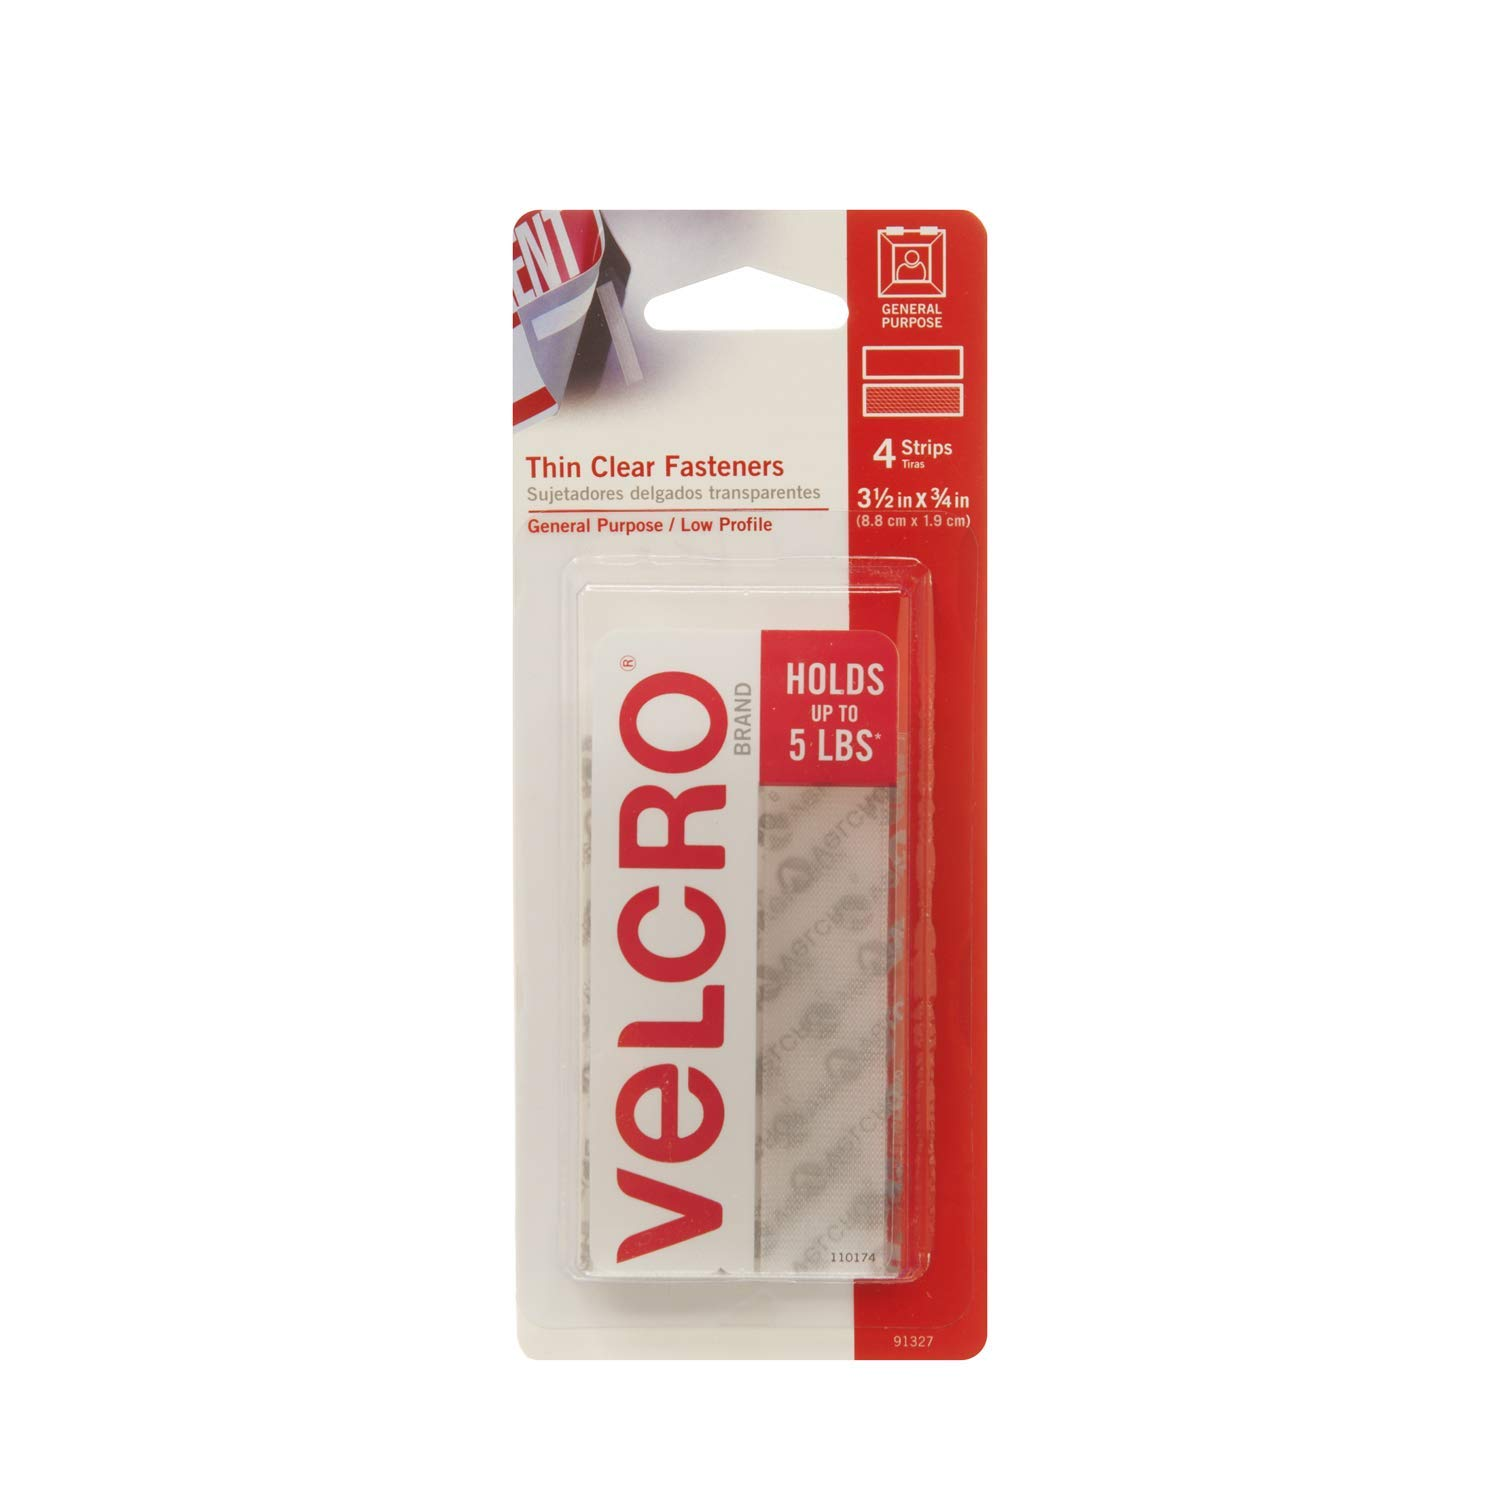 Amazon.com : VELCRO Brand - Thin Clear Fasteners | General Purpose/Low Profile | Perfect for Home or Office | 3 1/2in x 3/4in Strips, Clear - 3 Pack ...